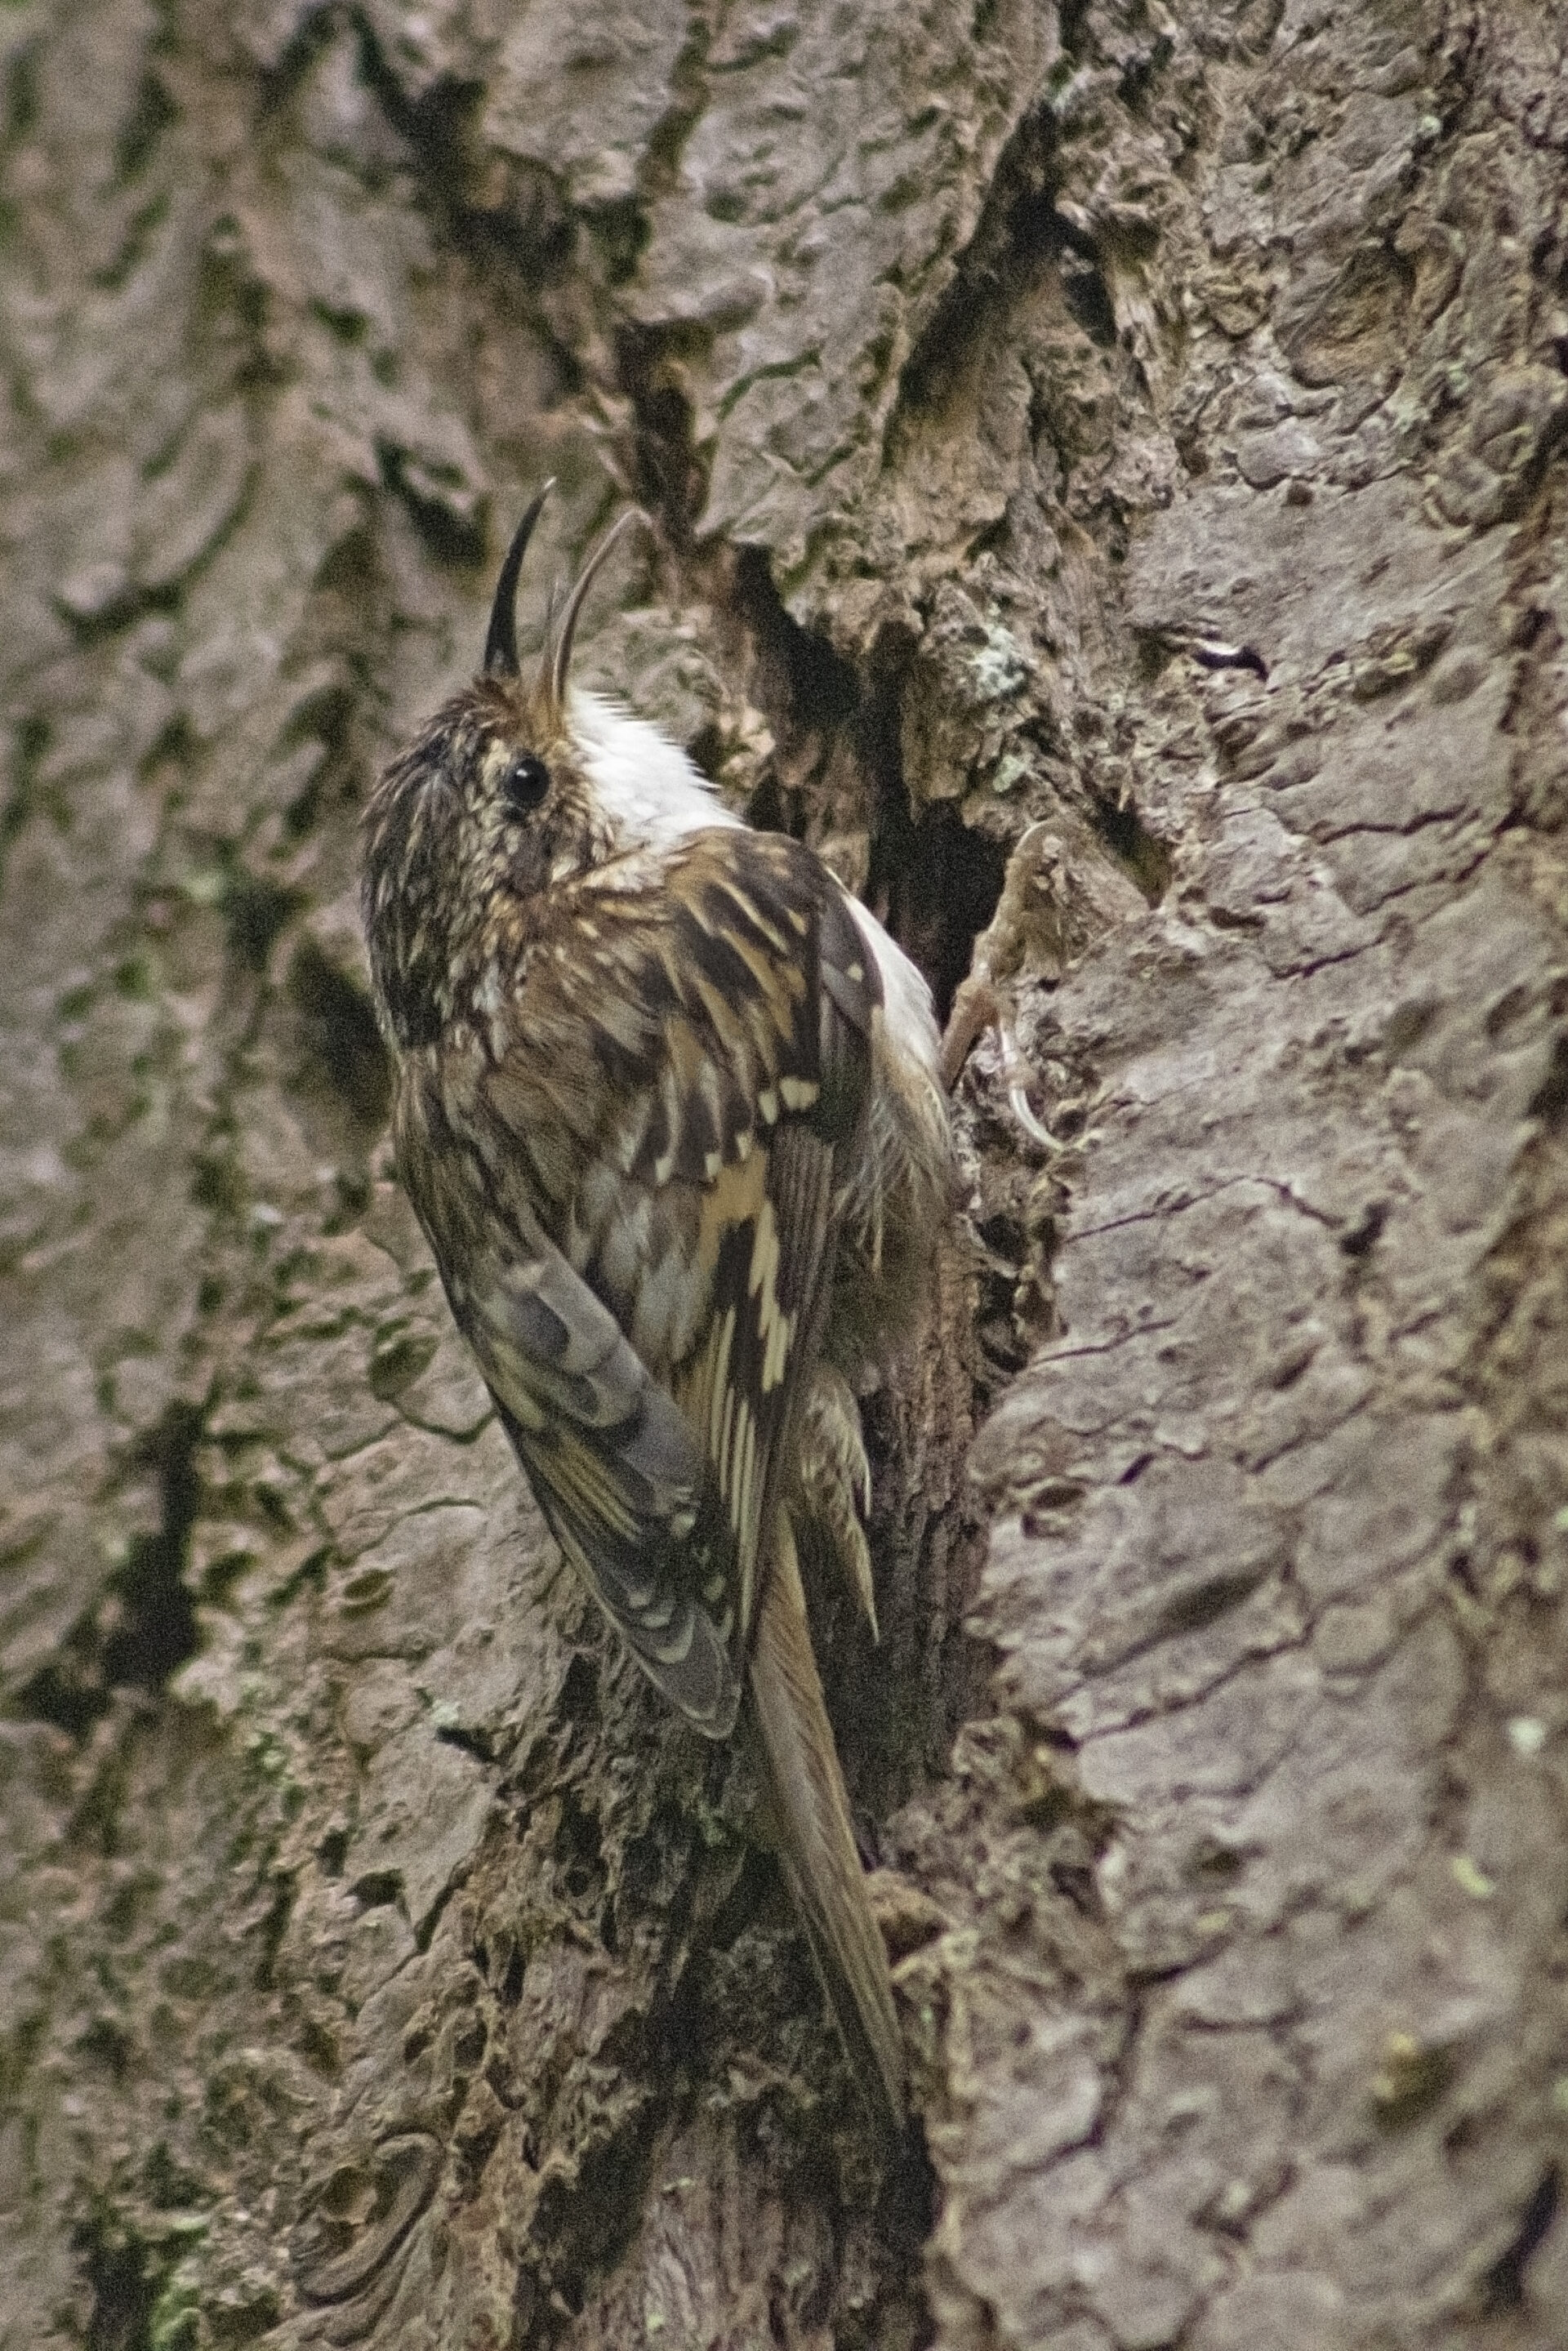 Brown Creeper in the Watershed, June 13 2021